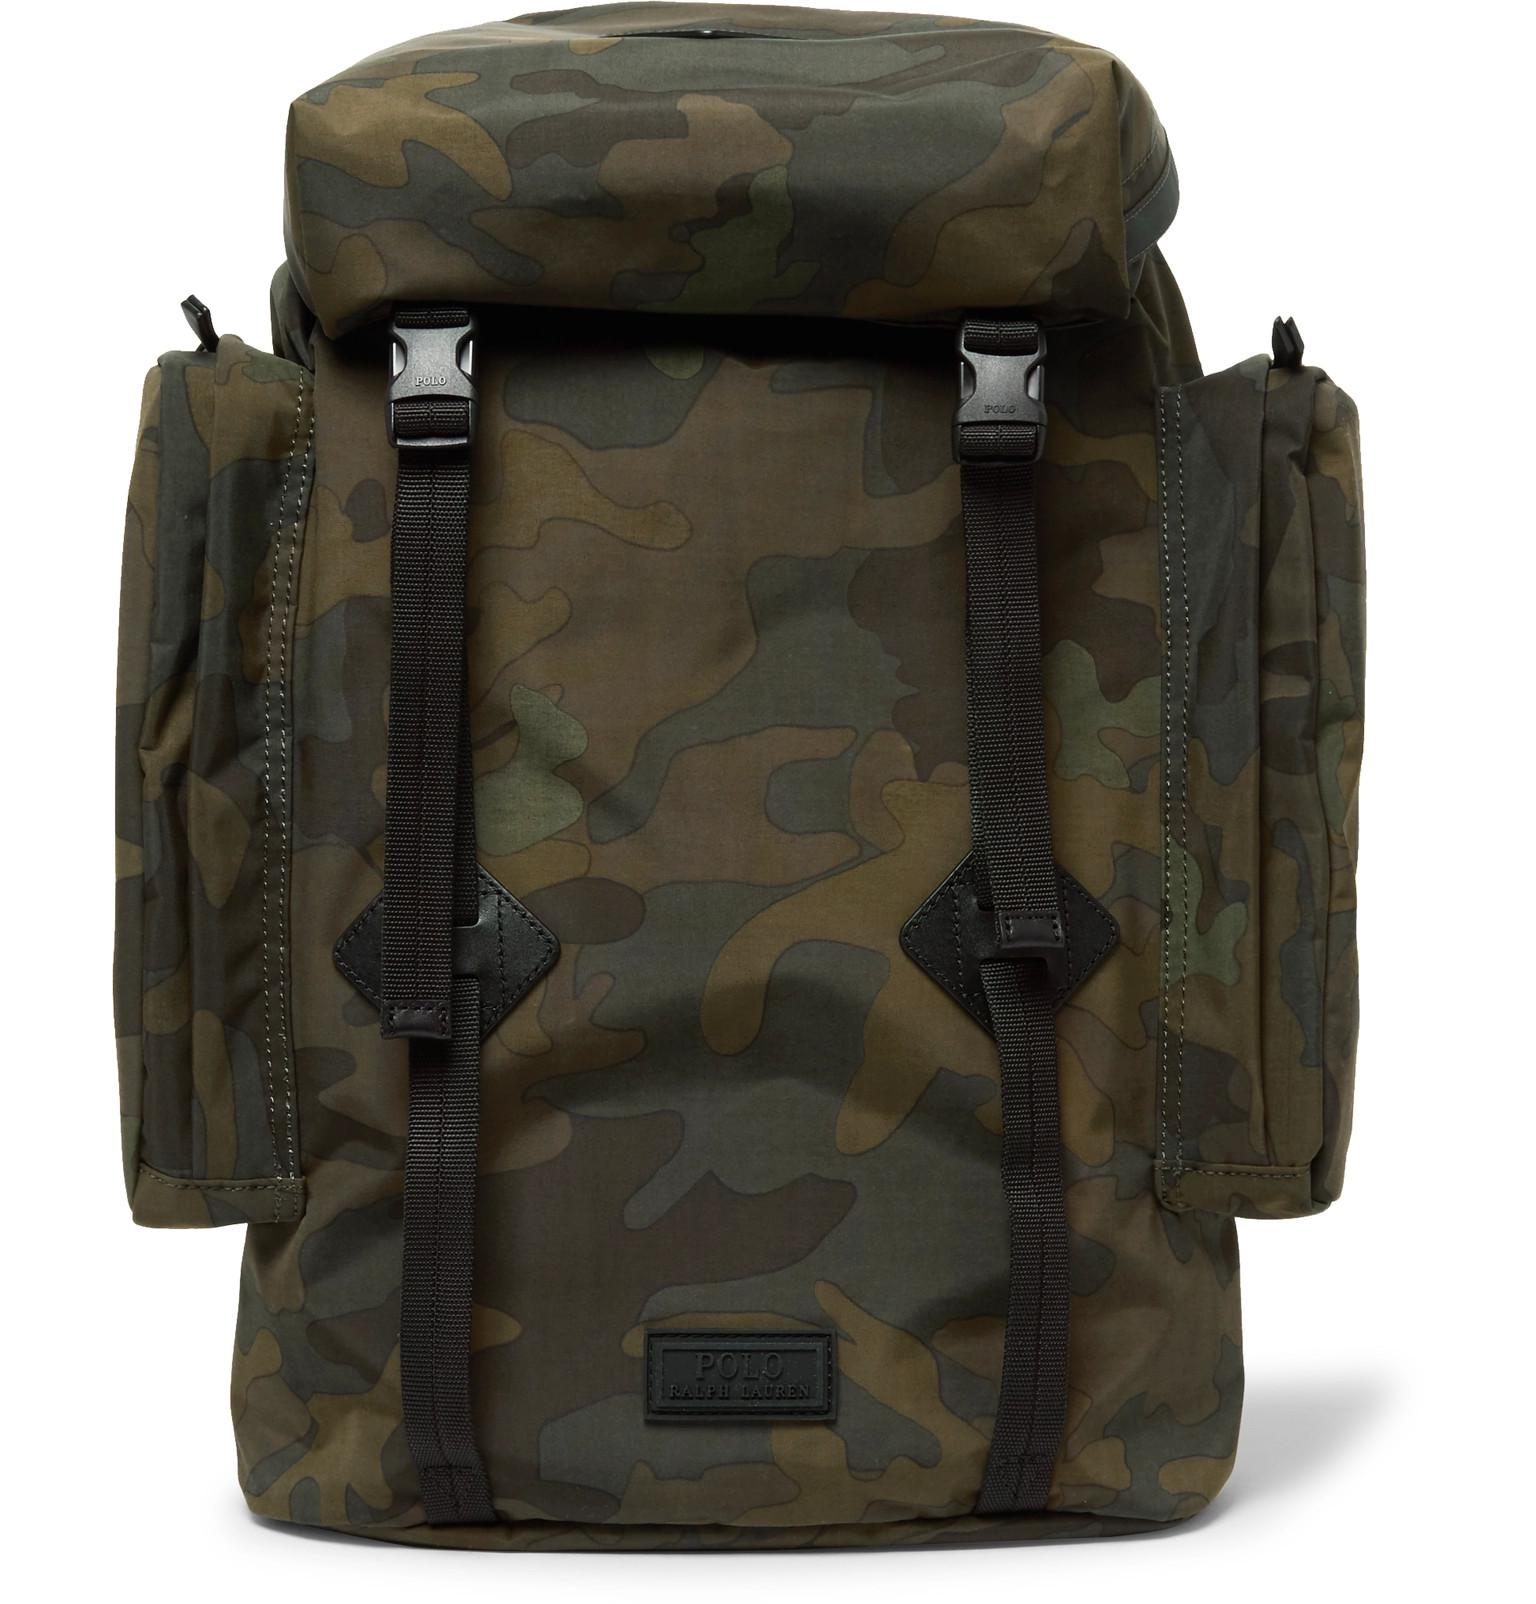 92b36023c4 Polo Ralph Lauren Leather-trimmed Camouflage-print Canvas Backpack ...